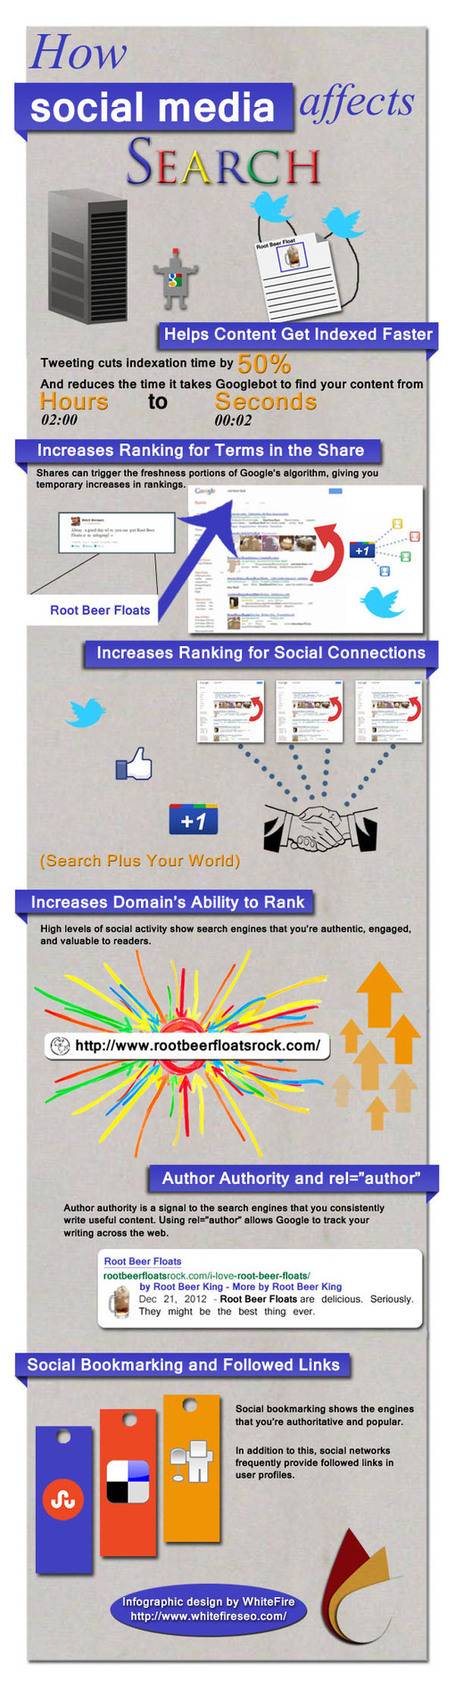 How Social Media Impacts SEO and Site Ranking: infographic | Social Media (network, technology, blog, community, virtual reality, etc...) | Scoop.it